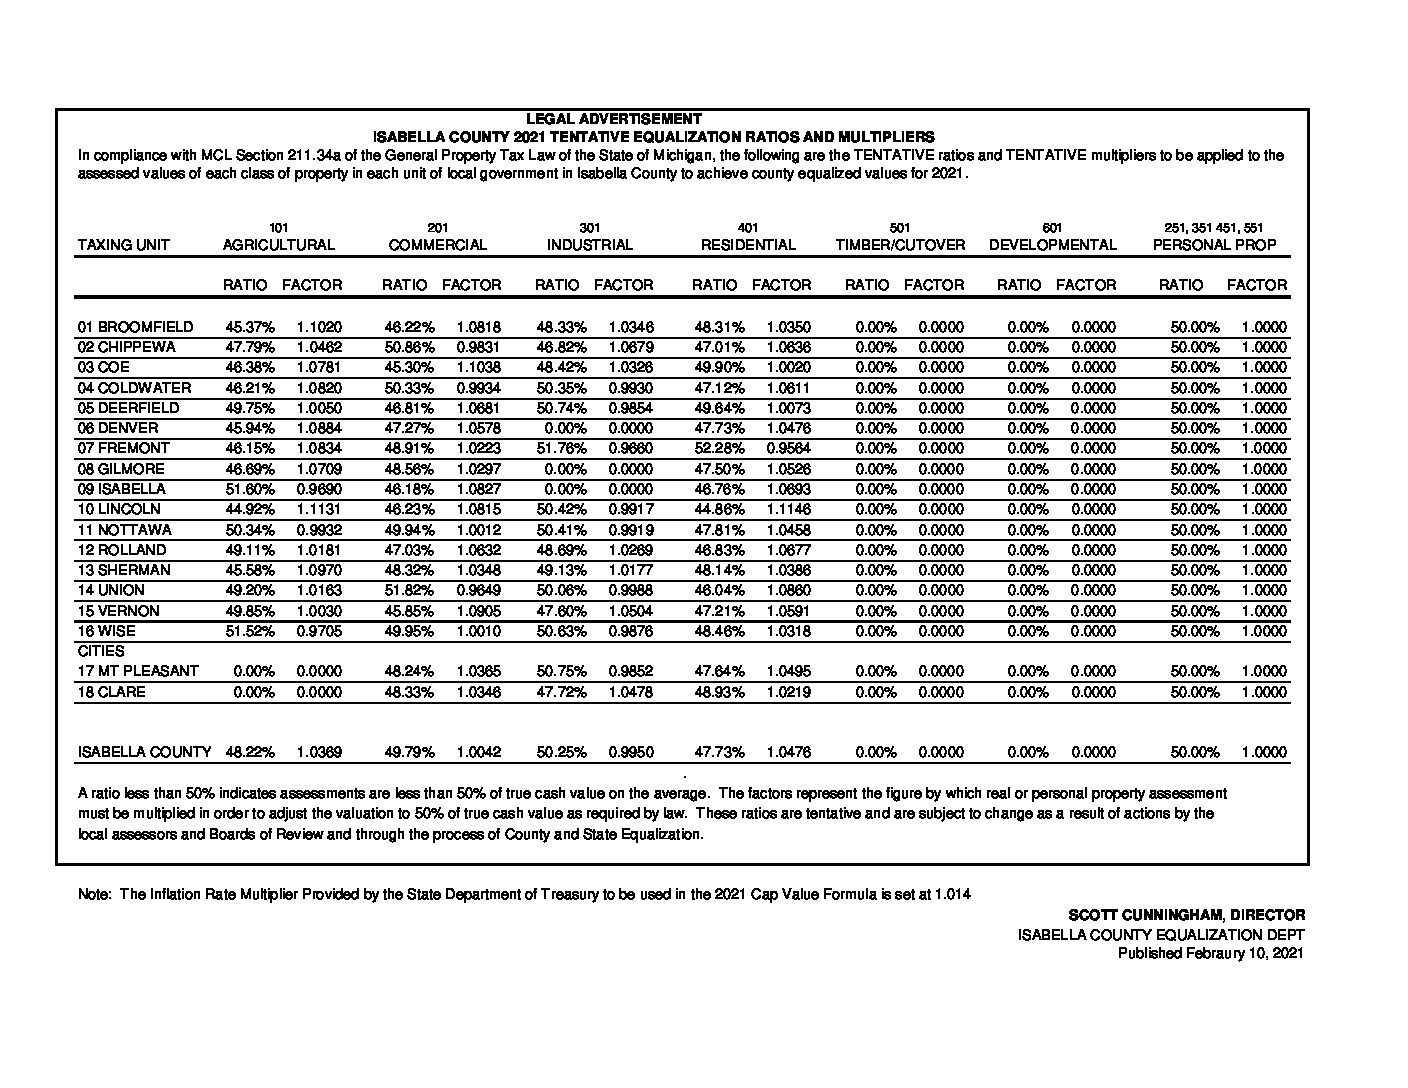 preview image of first page Equalization Ratios Tentative for 2021